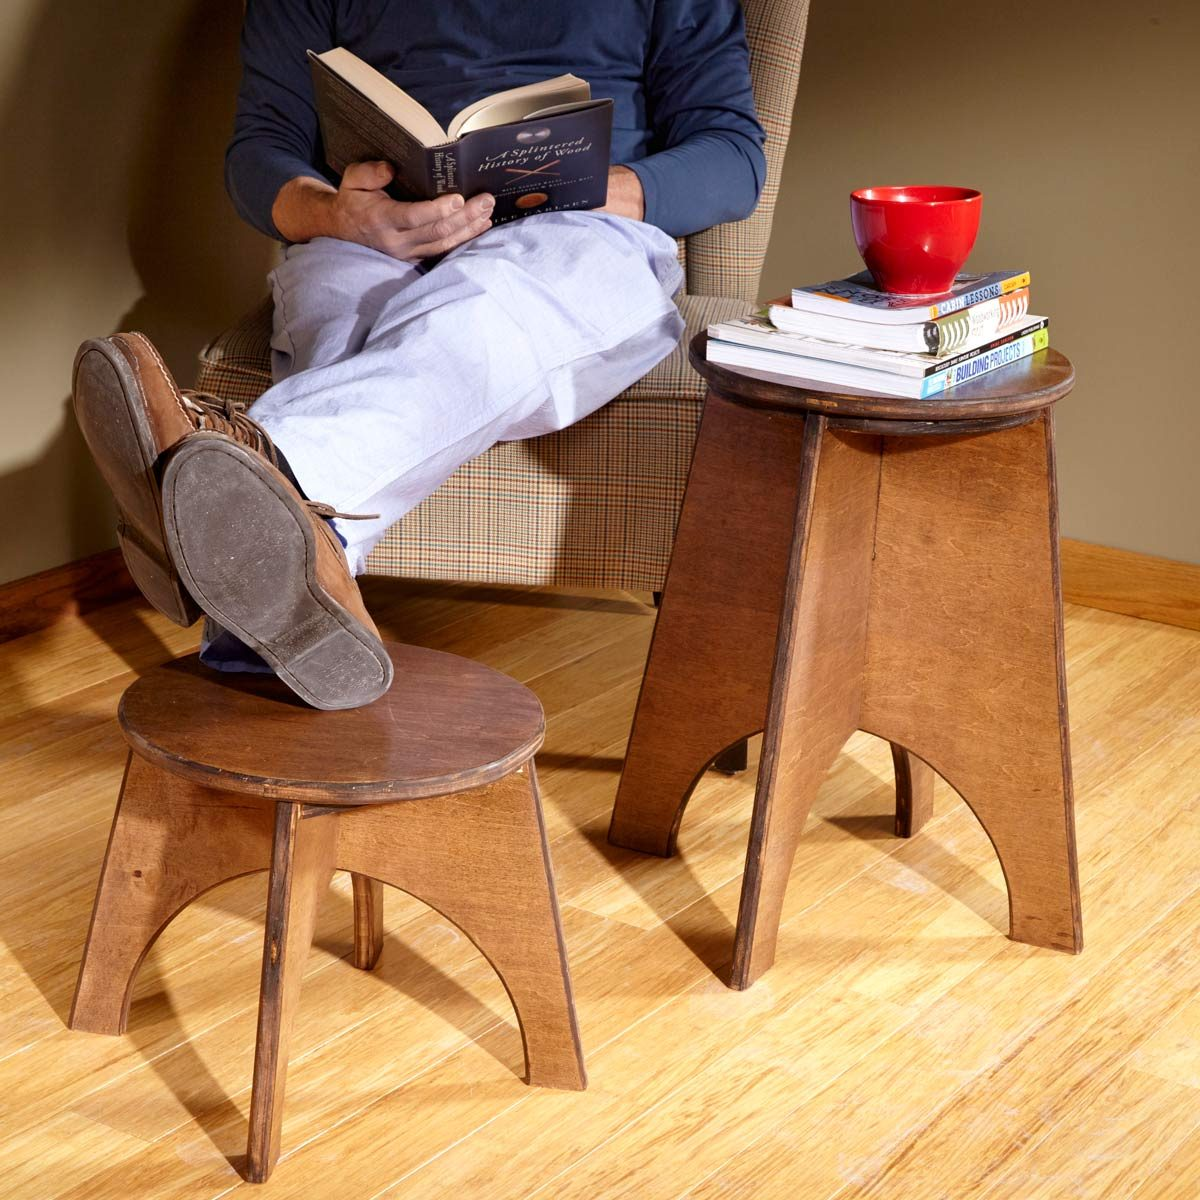 Gifts for Mom: All-Purpose Stool